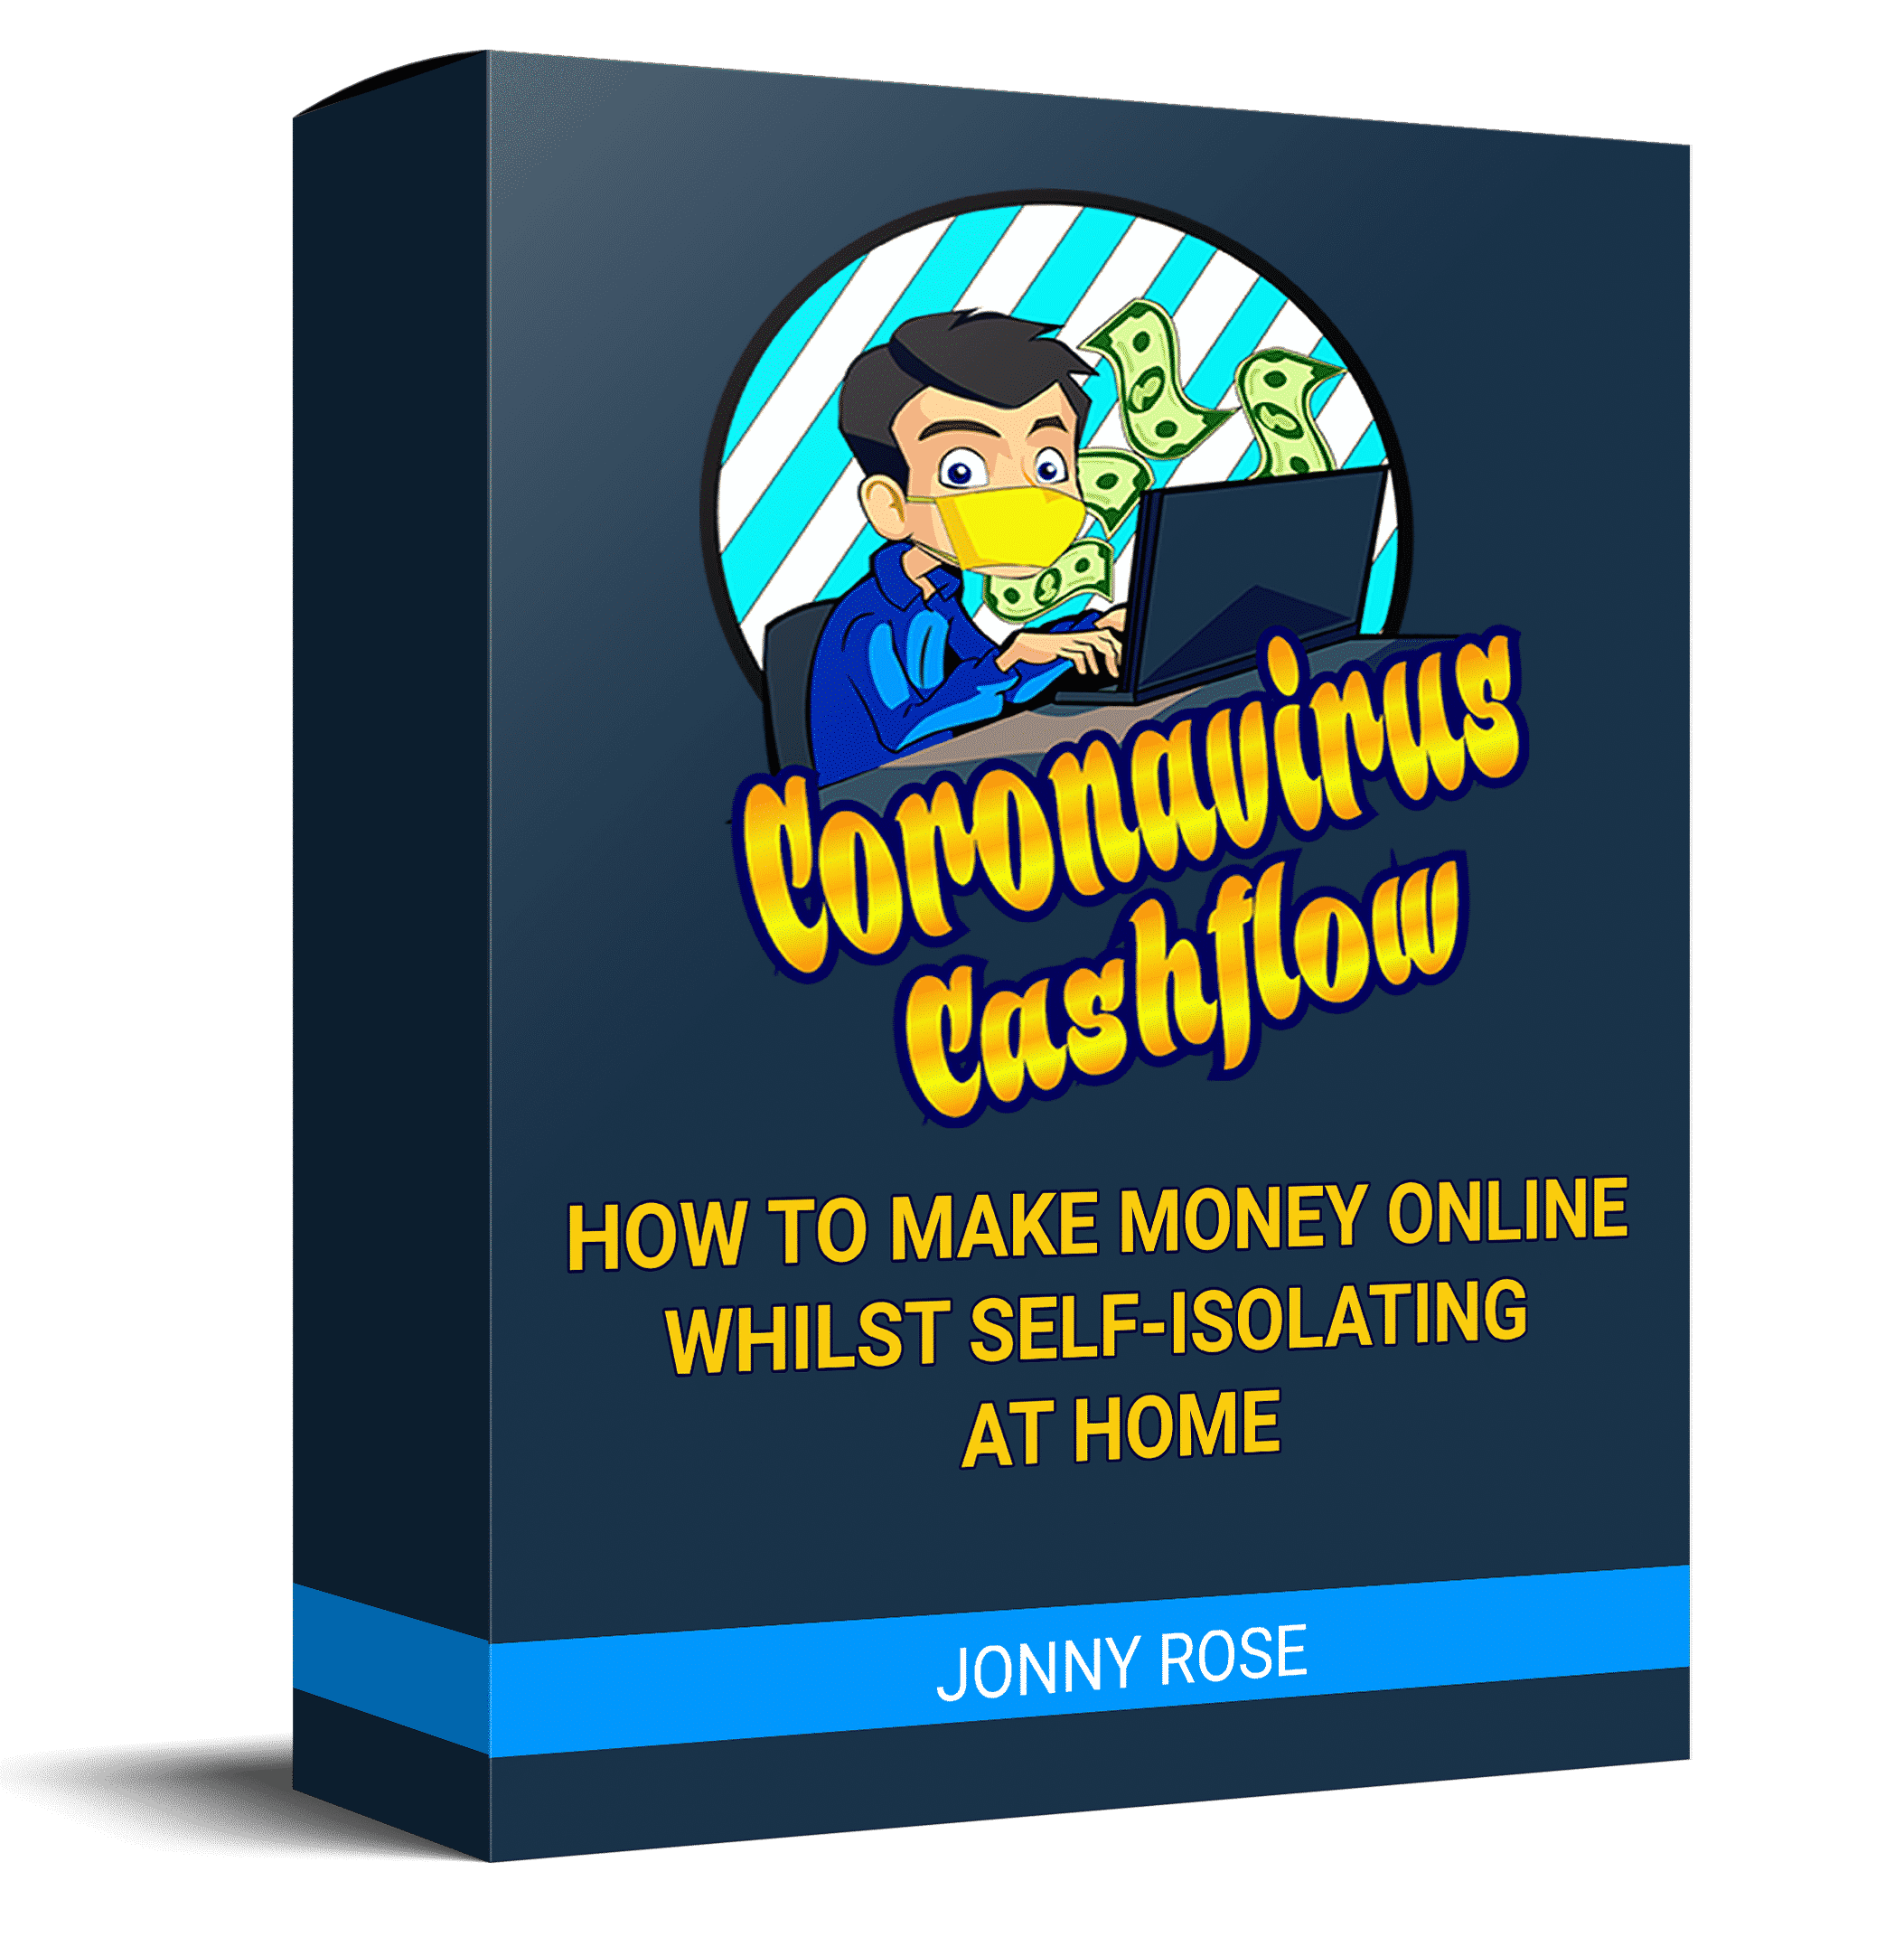 The Coronavirus Cashflow Review: How to Make Money Fast in This Economic Crisis 1